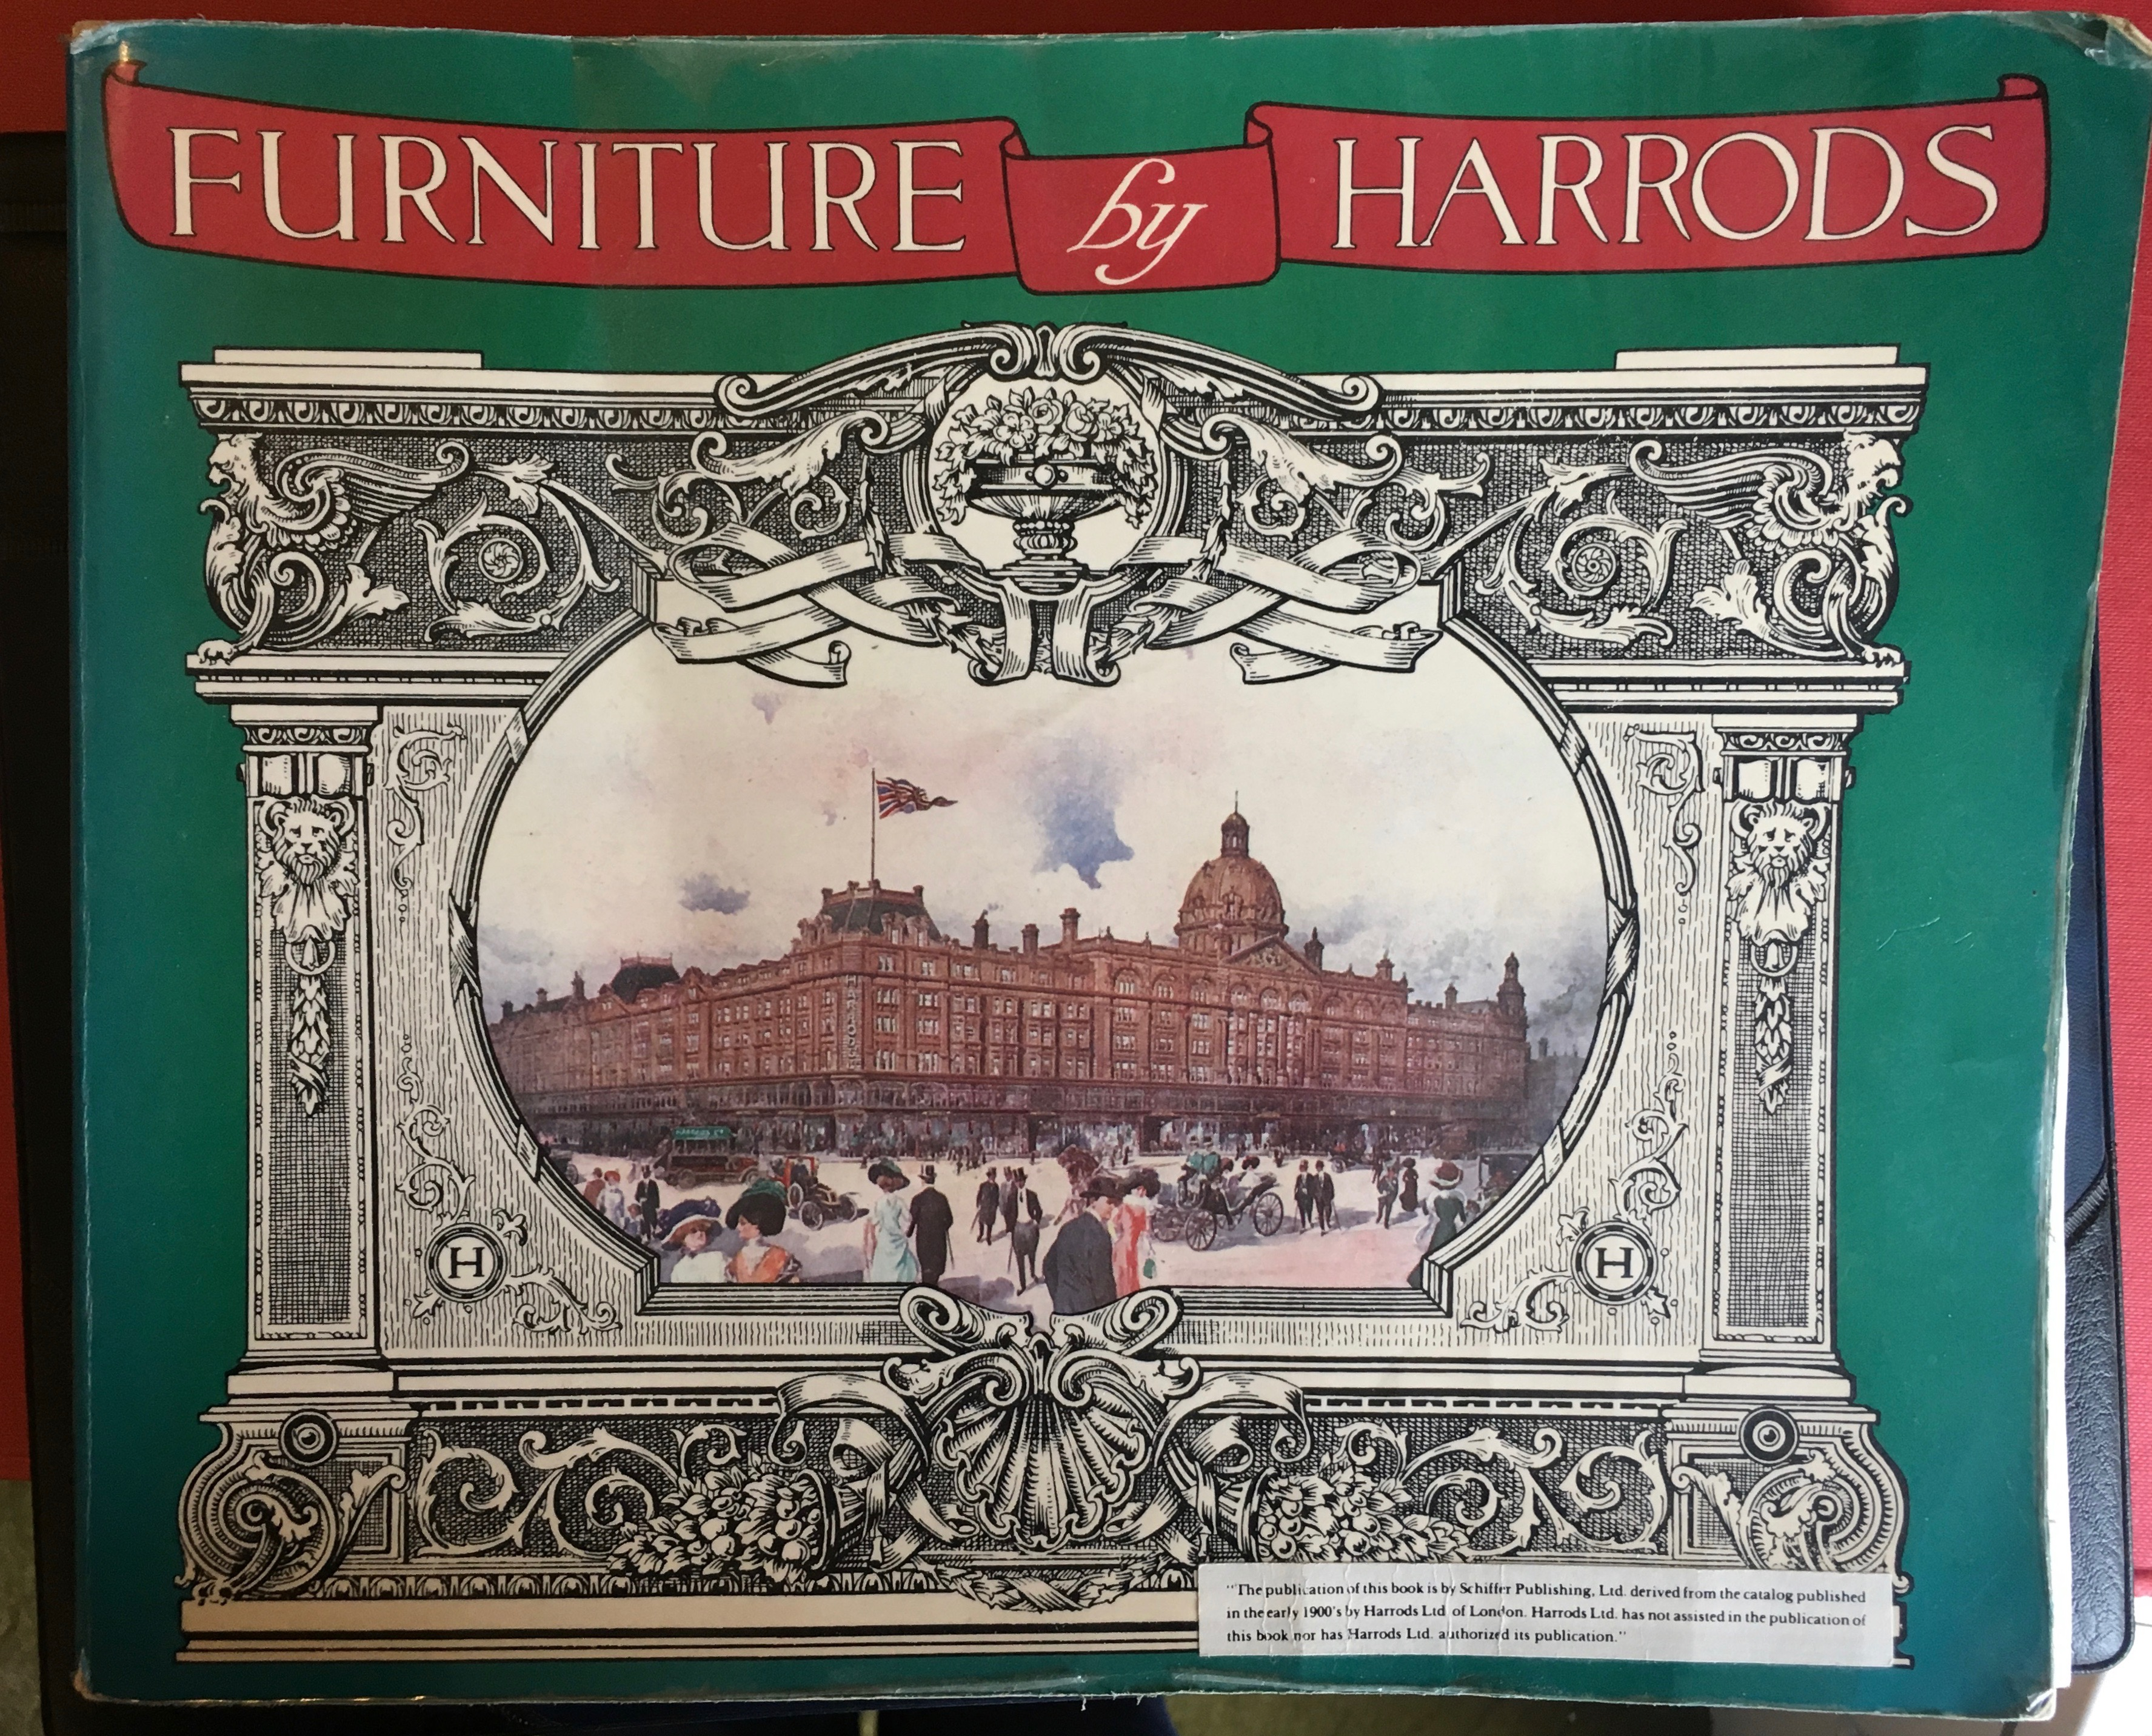 Cover of an Edwardian catalogue of Furniture by Harrods